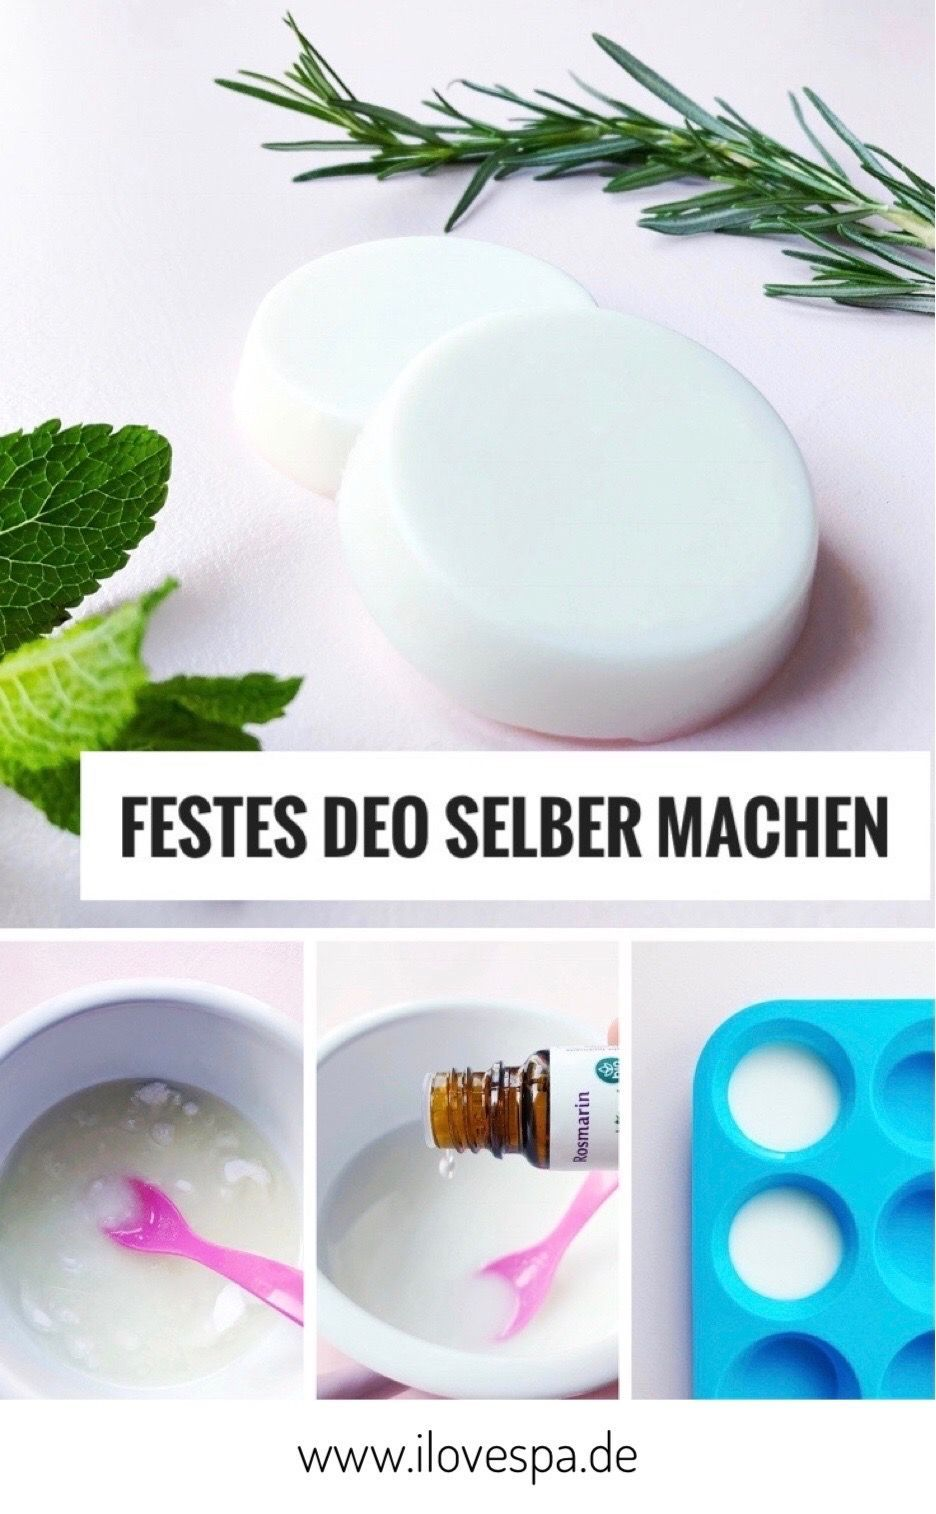 Photo of Festes Deo selber machen – DIY Rosemary Mint Deodorant